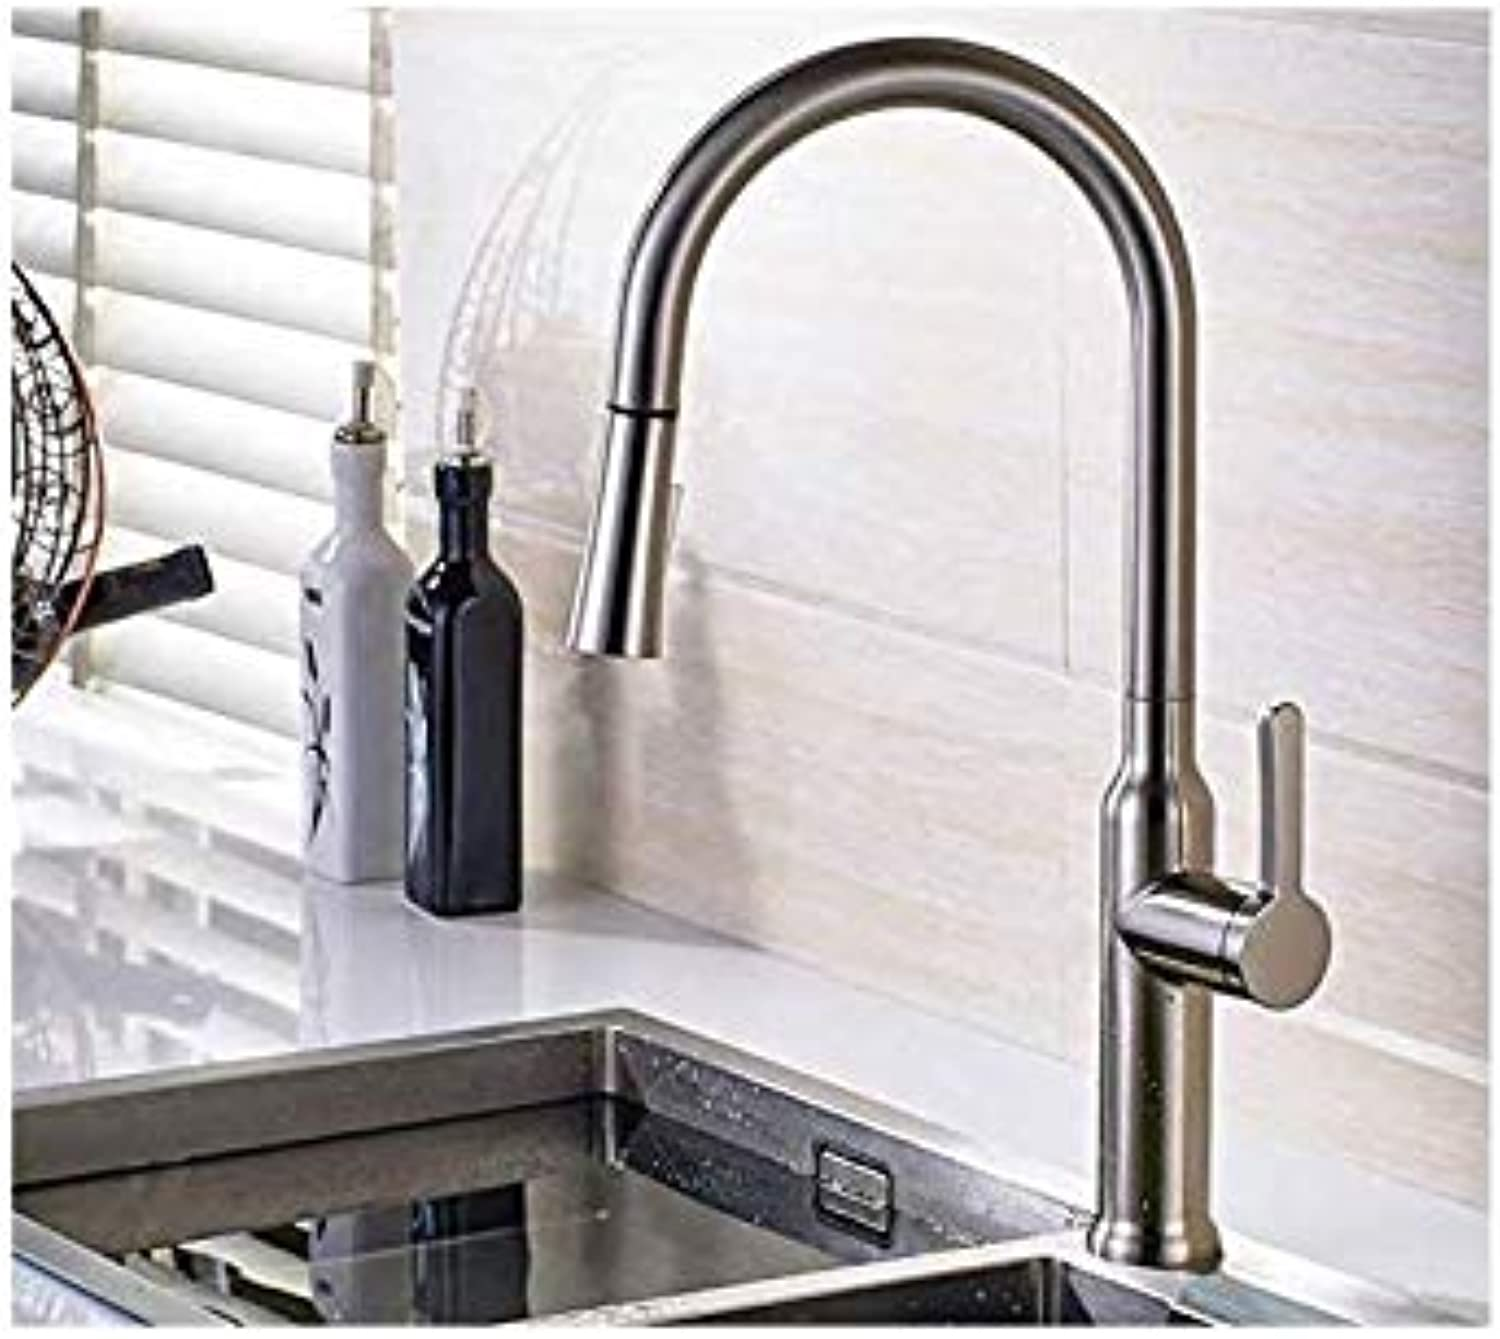 Kitchen Fauct Pulling Out Kitchen Faucet Polished Nickel Finish All Around redating Swivel 2-Functional Water Sink Deck Mounted Faucets C046N